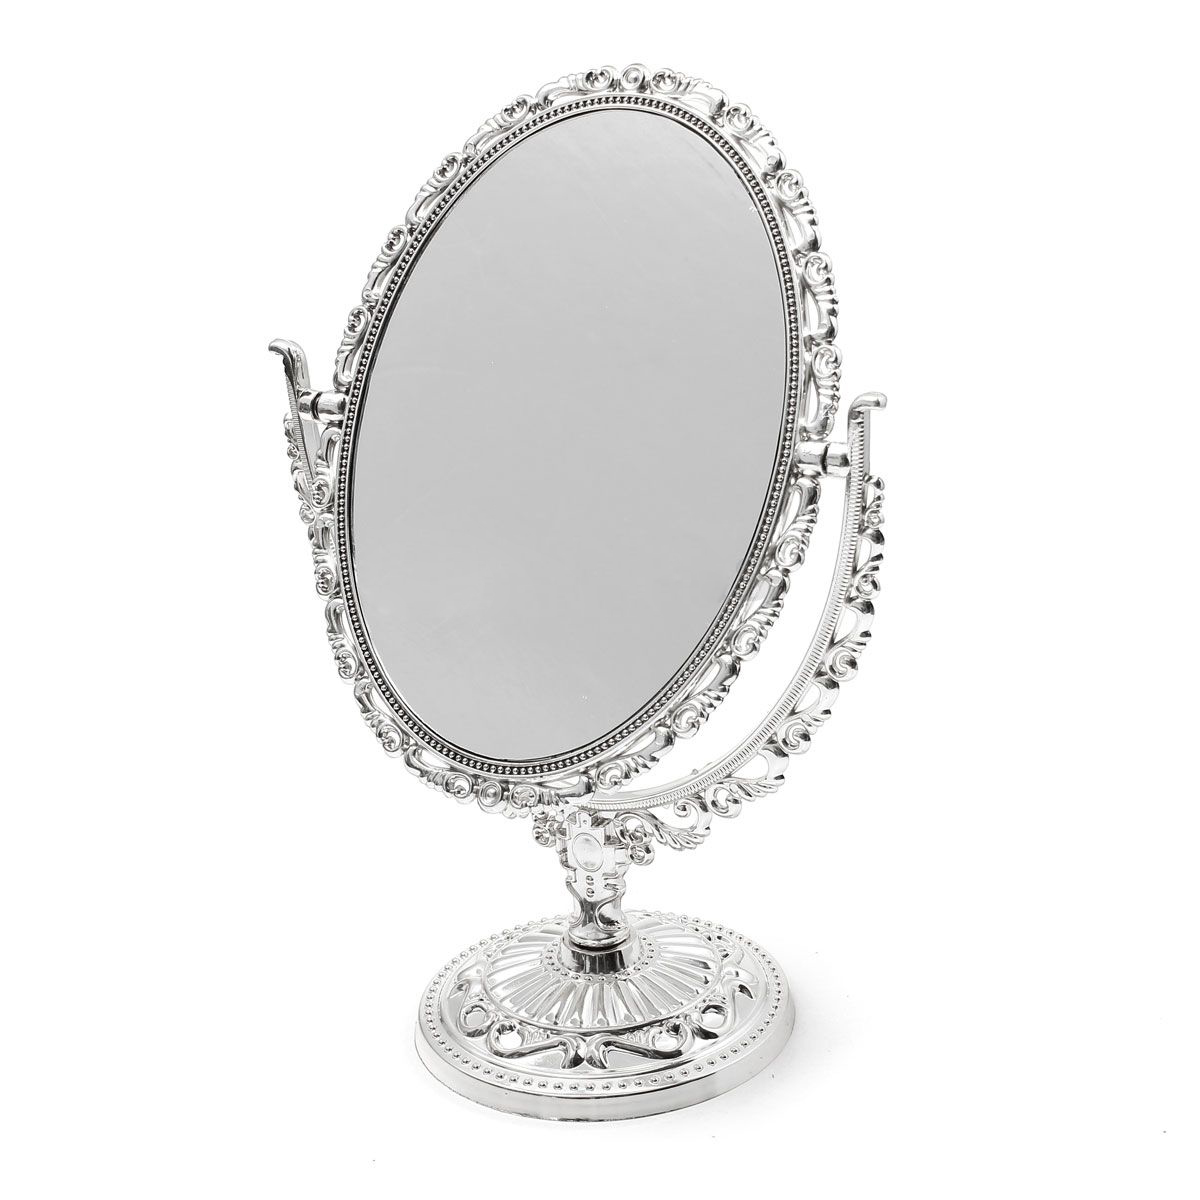 SILVER VANITY MAKE UP COSMETIC TABLE BATHROOM MIRROR ON FOOT STAND ...